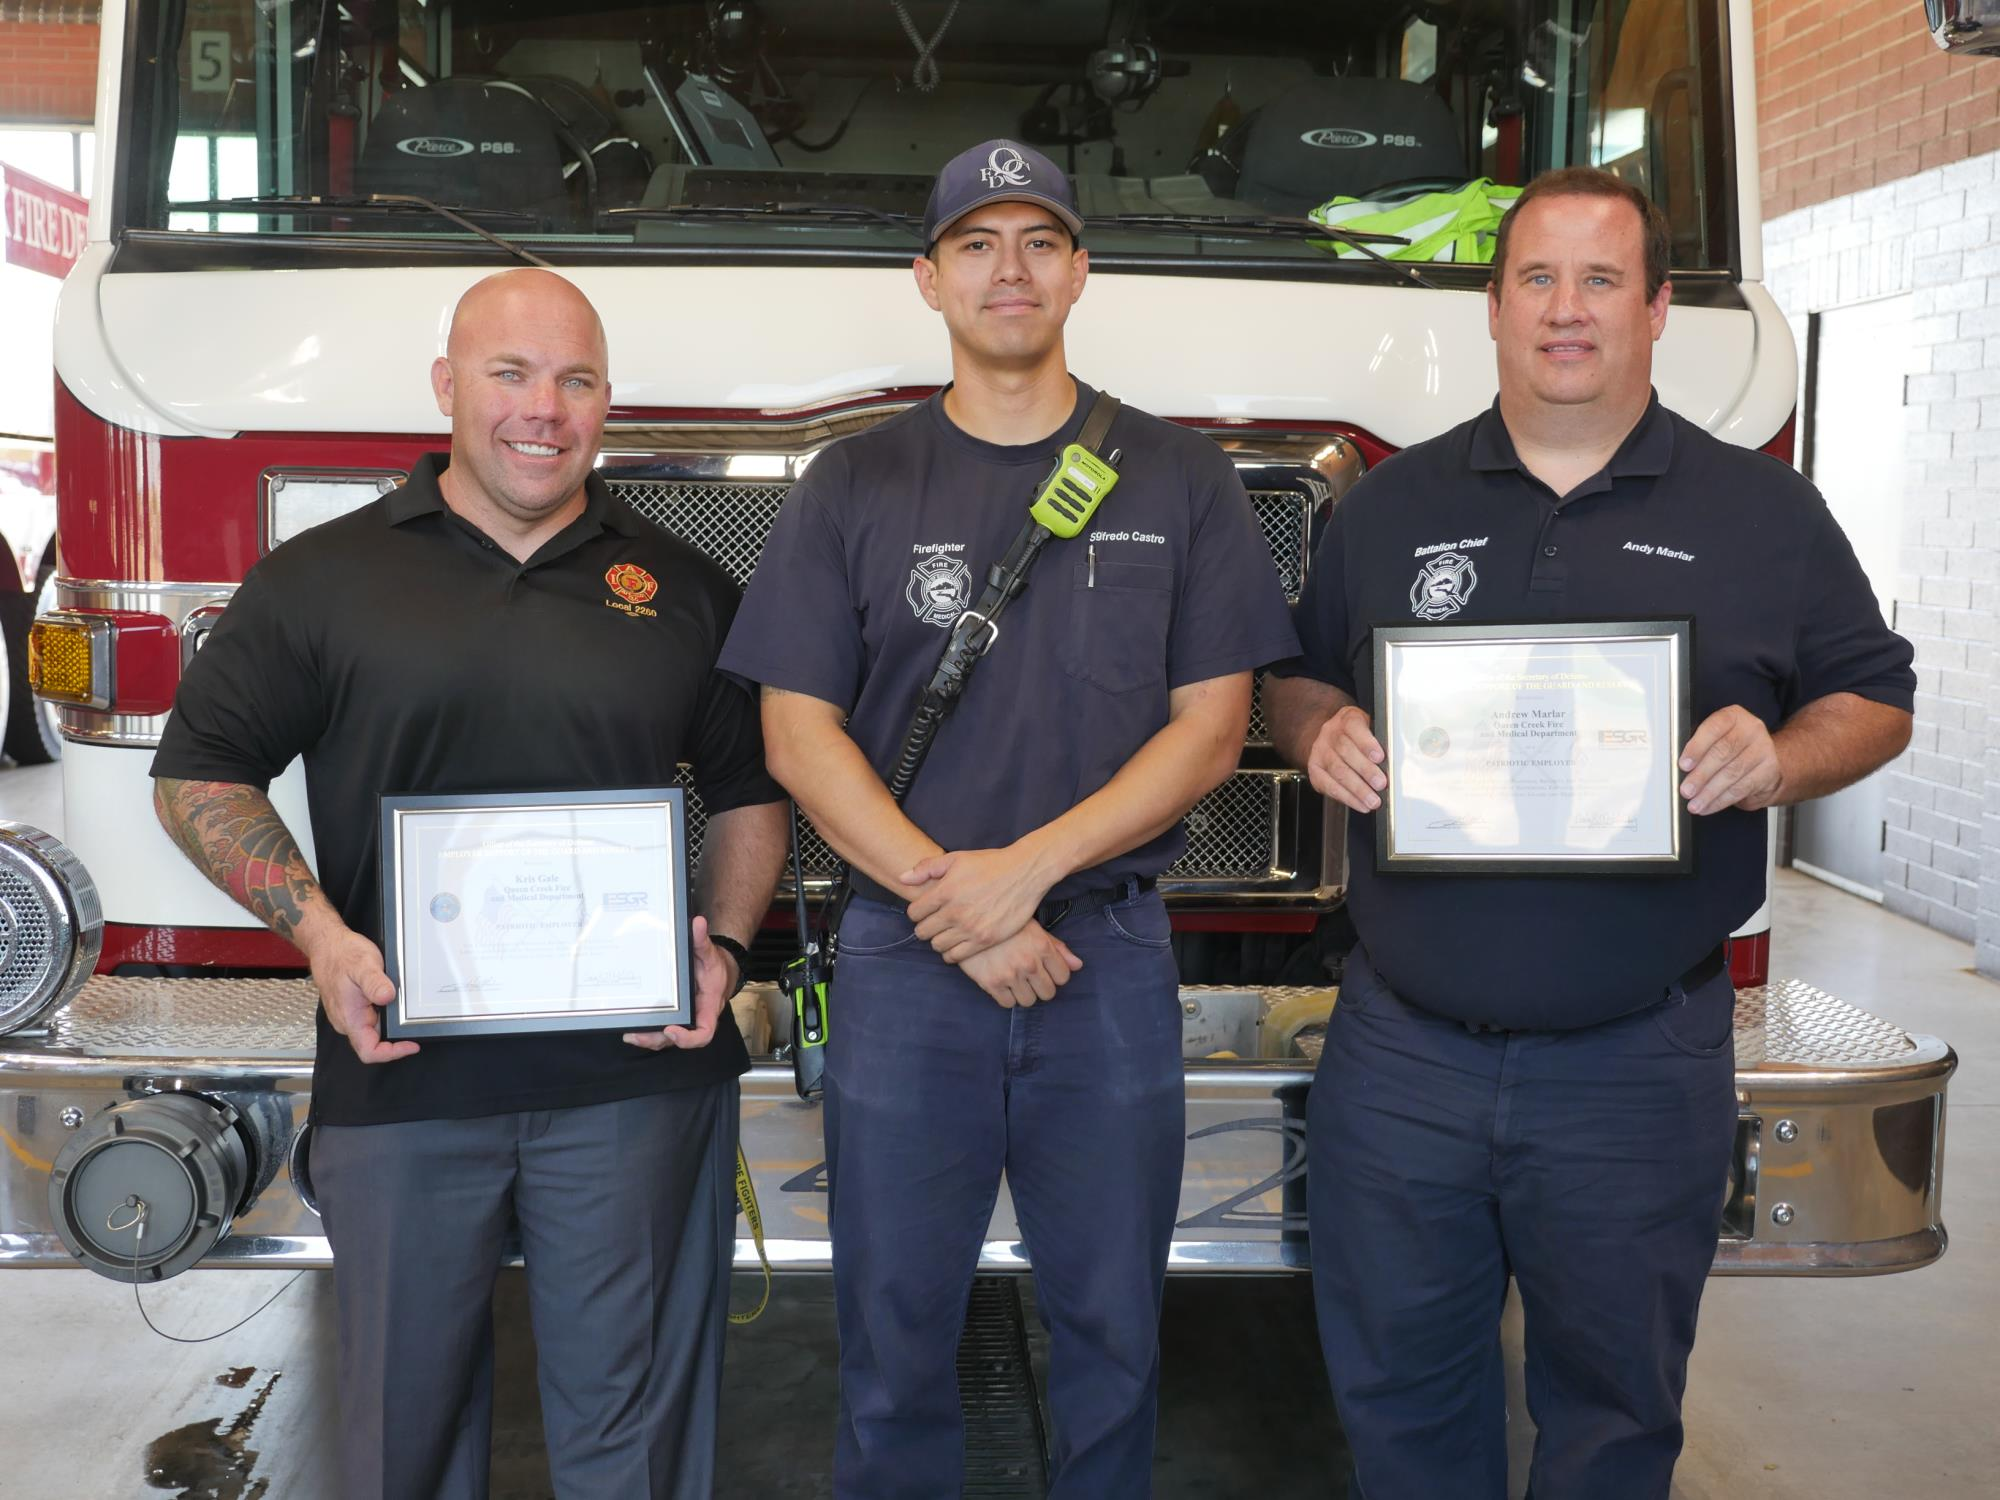 Queen Creek Fire And Medical Personnel Recognized With Patriot Award News Releases Queen Creek Az